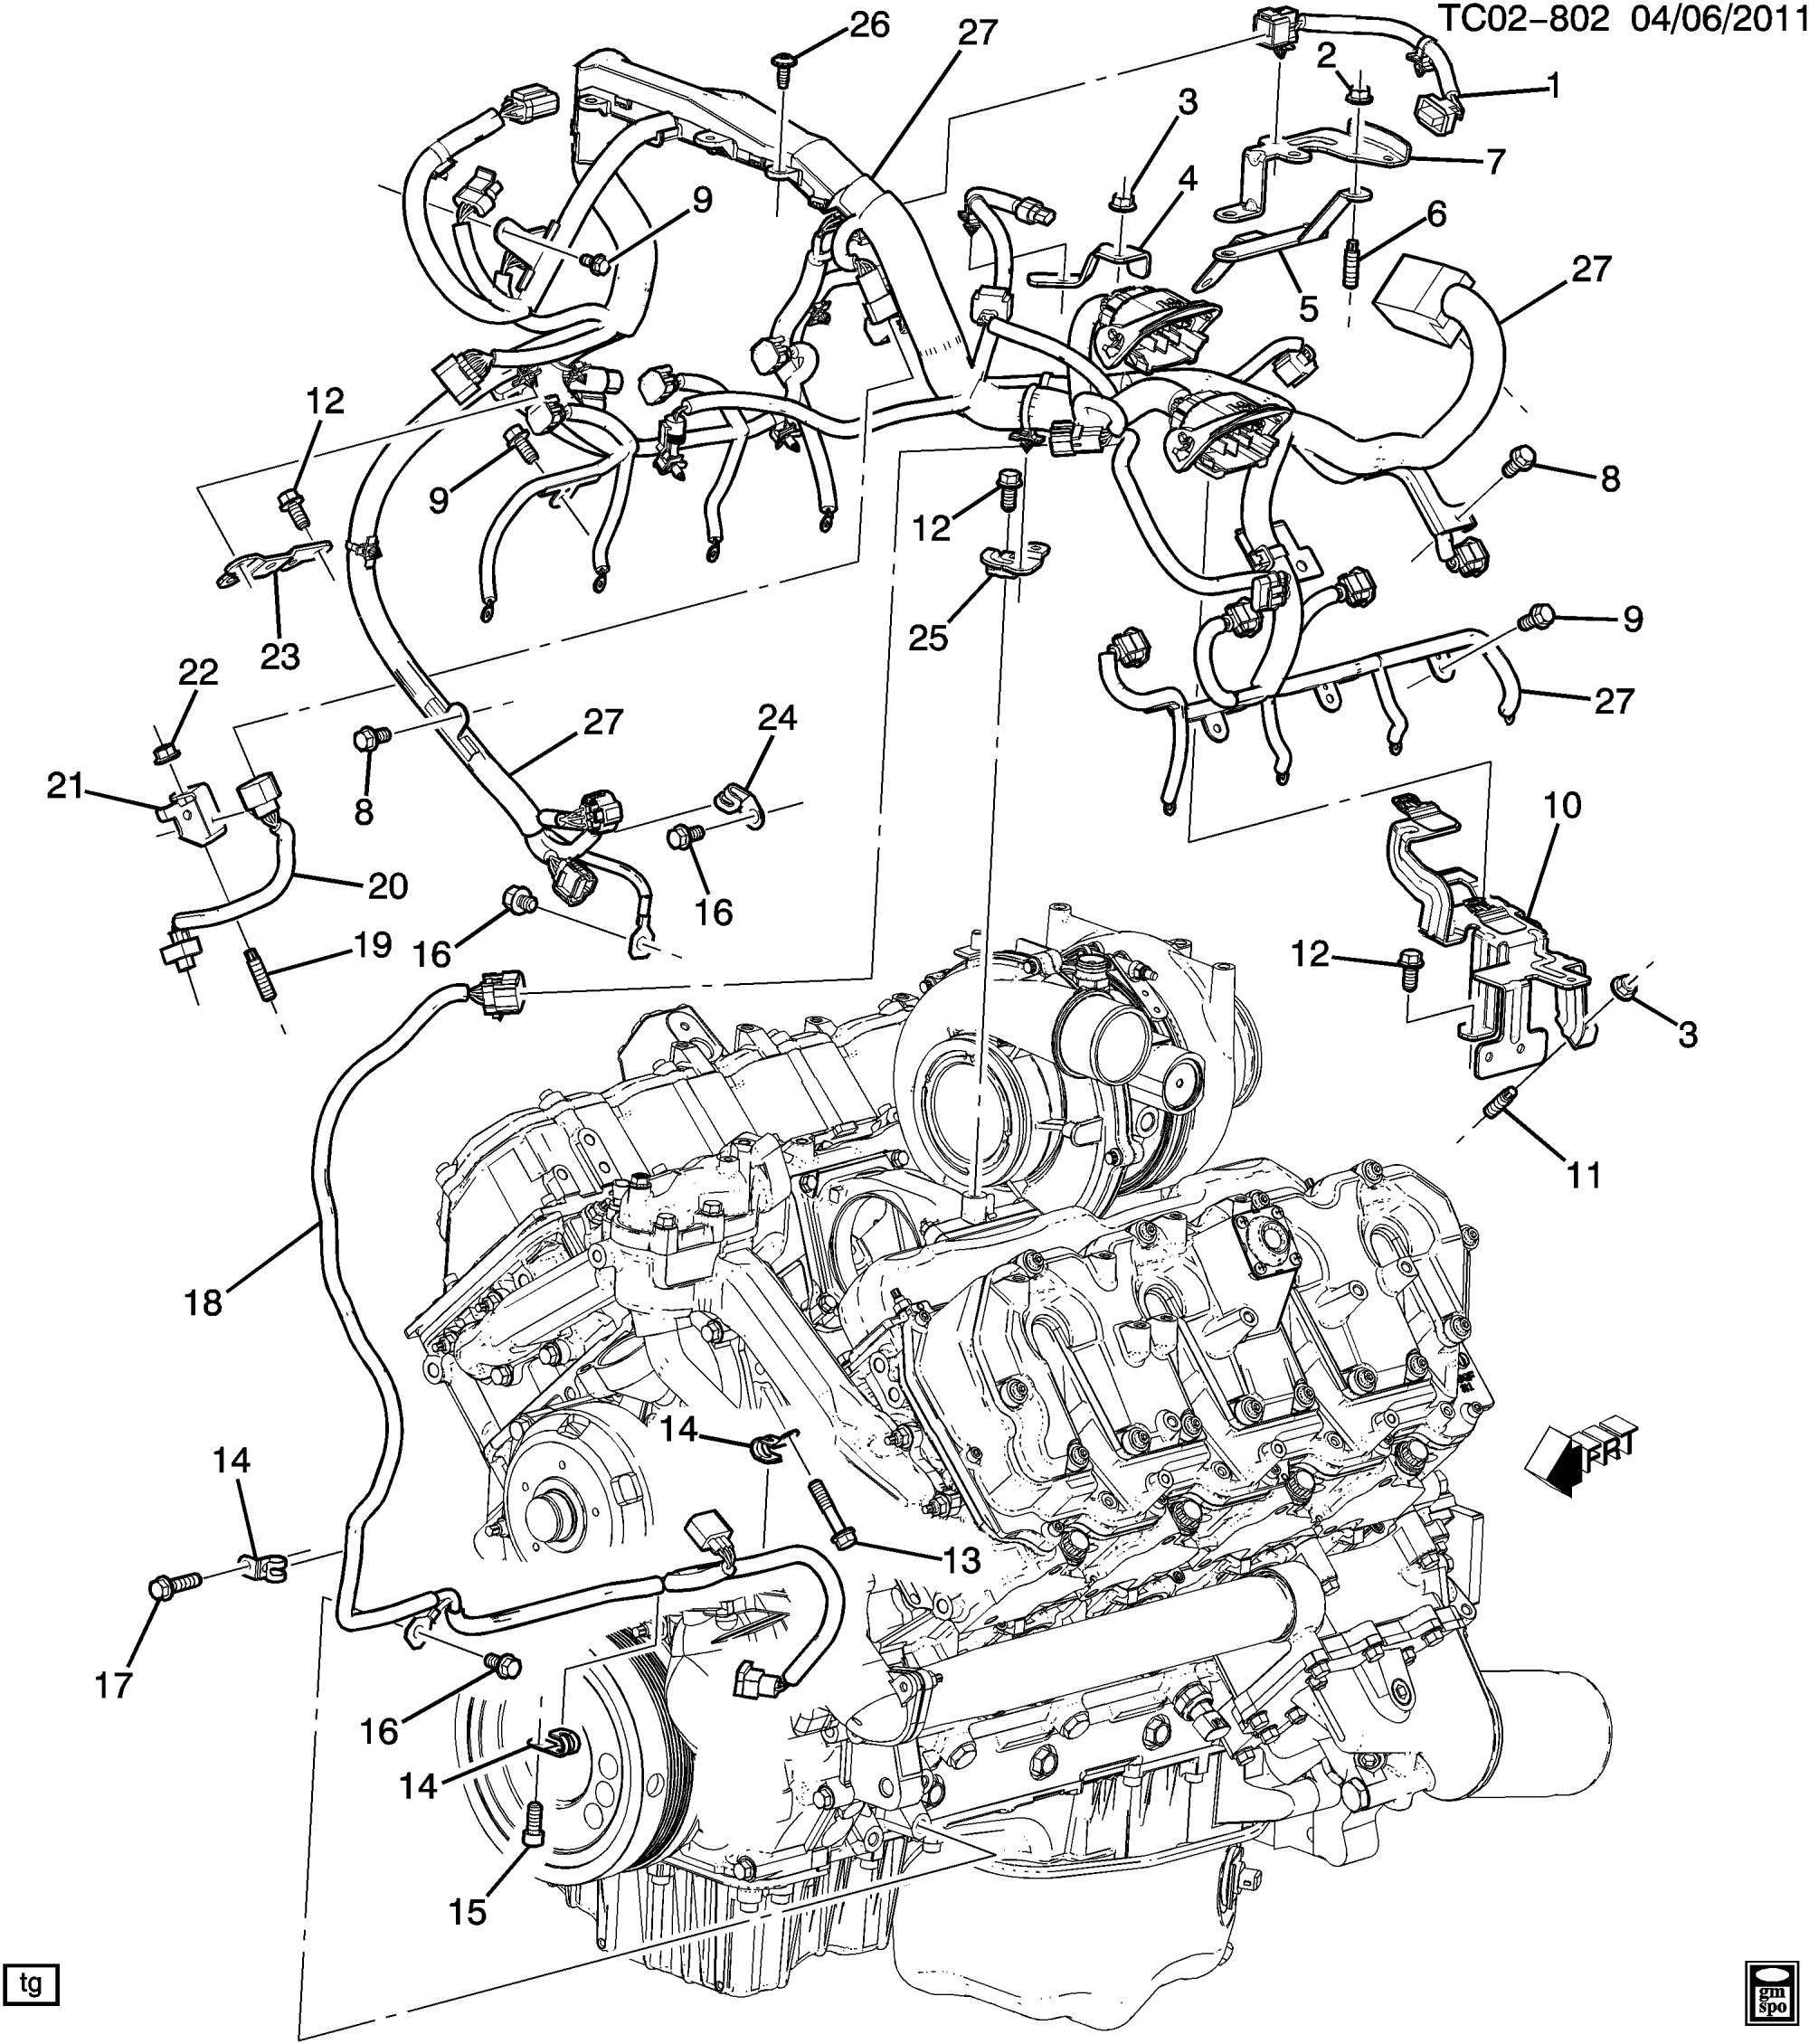 hight resolution of 2003 duramax ecm wiring diagram wiring diagram general home 2003 duramax ecm wiring diagram